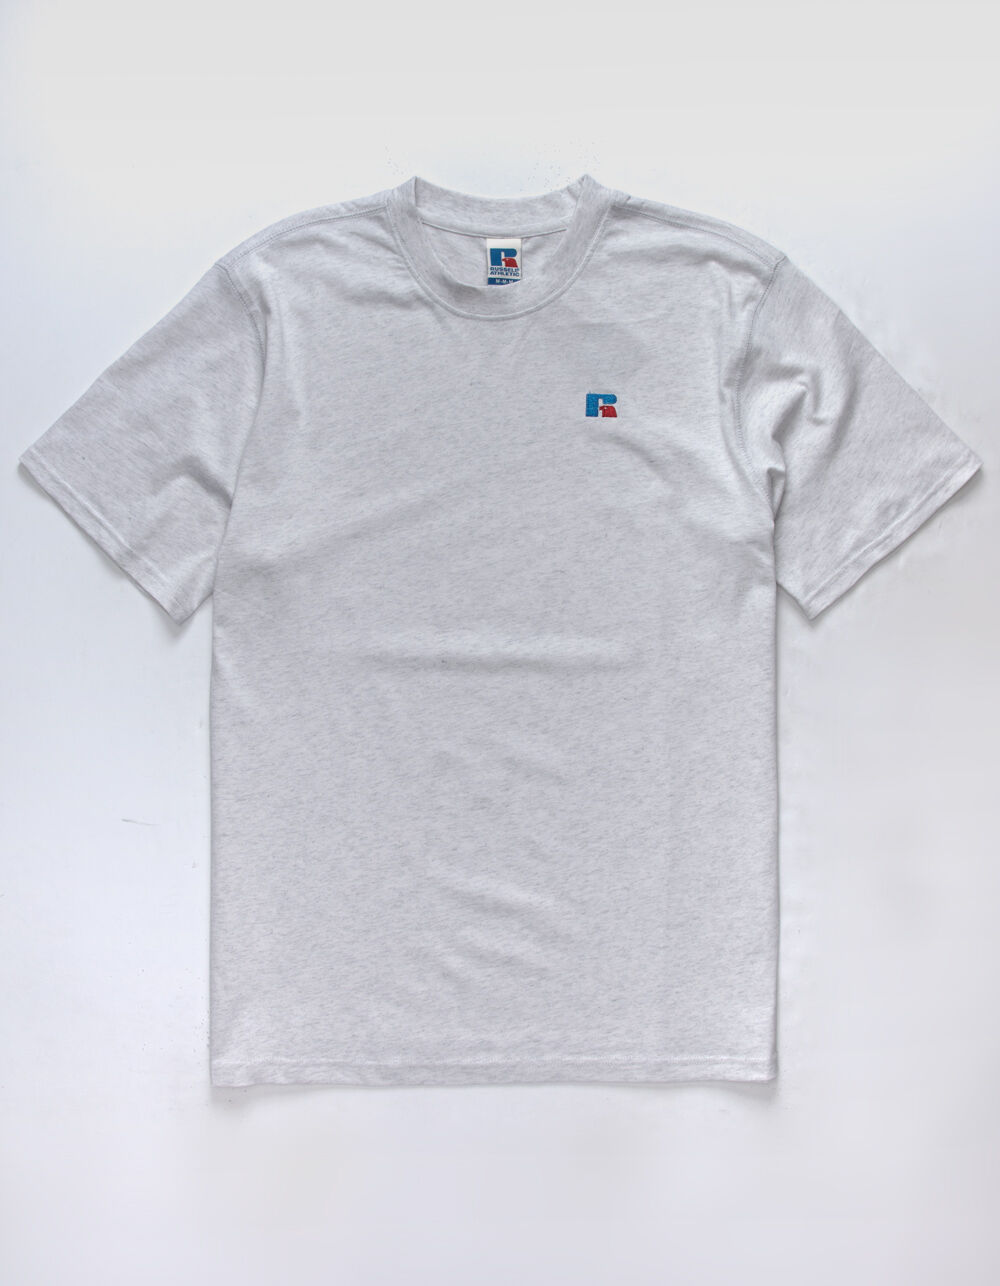 RUSSELL ATHLETIC Baseliner Silver Marl T-Shirt